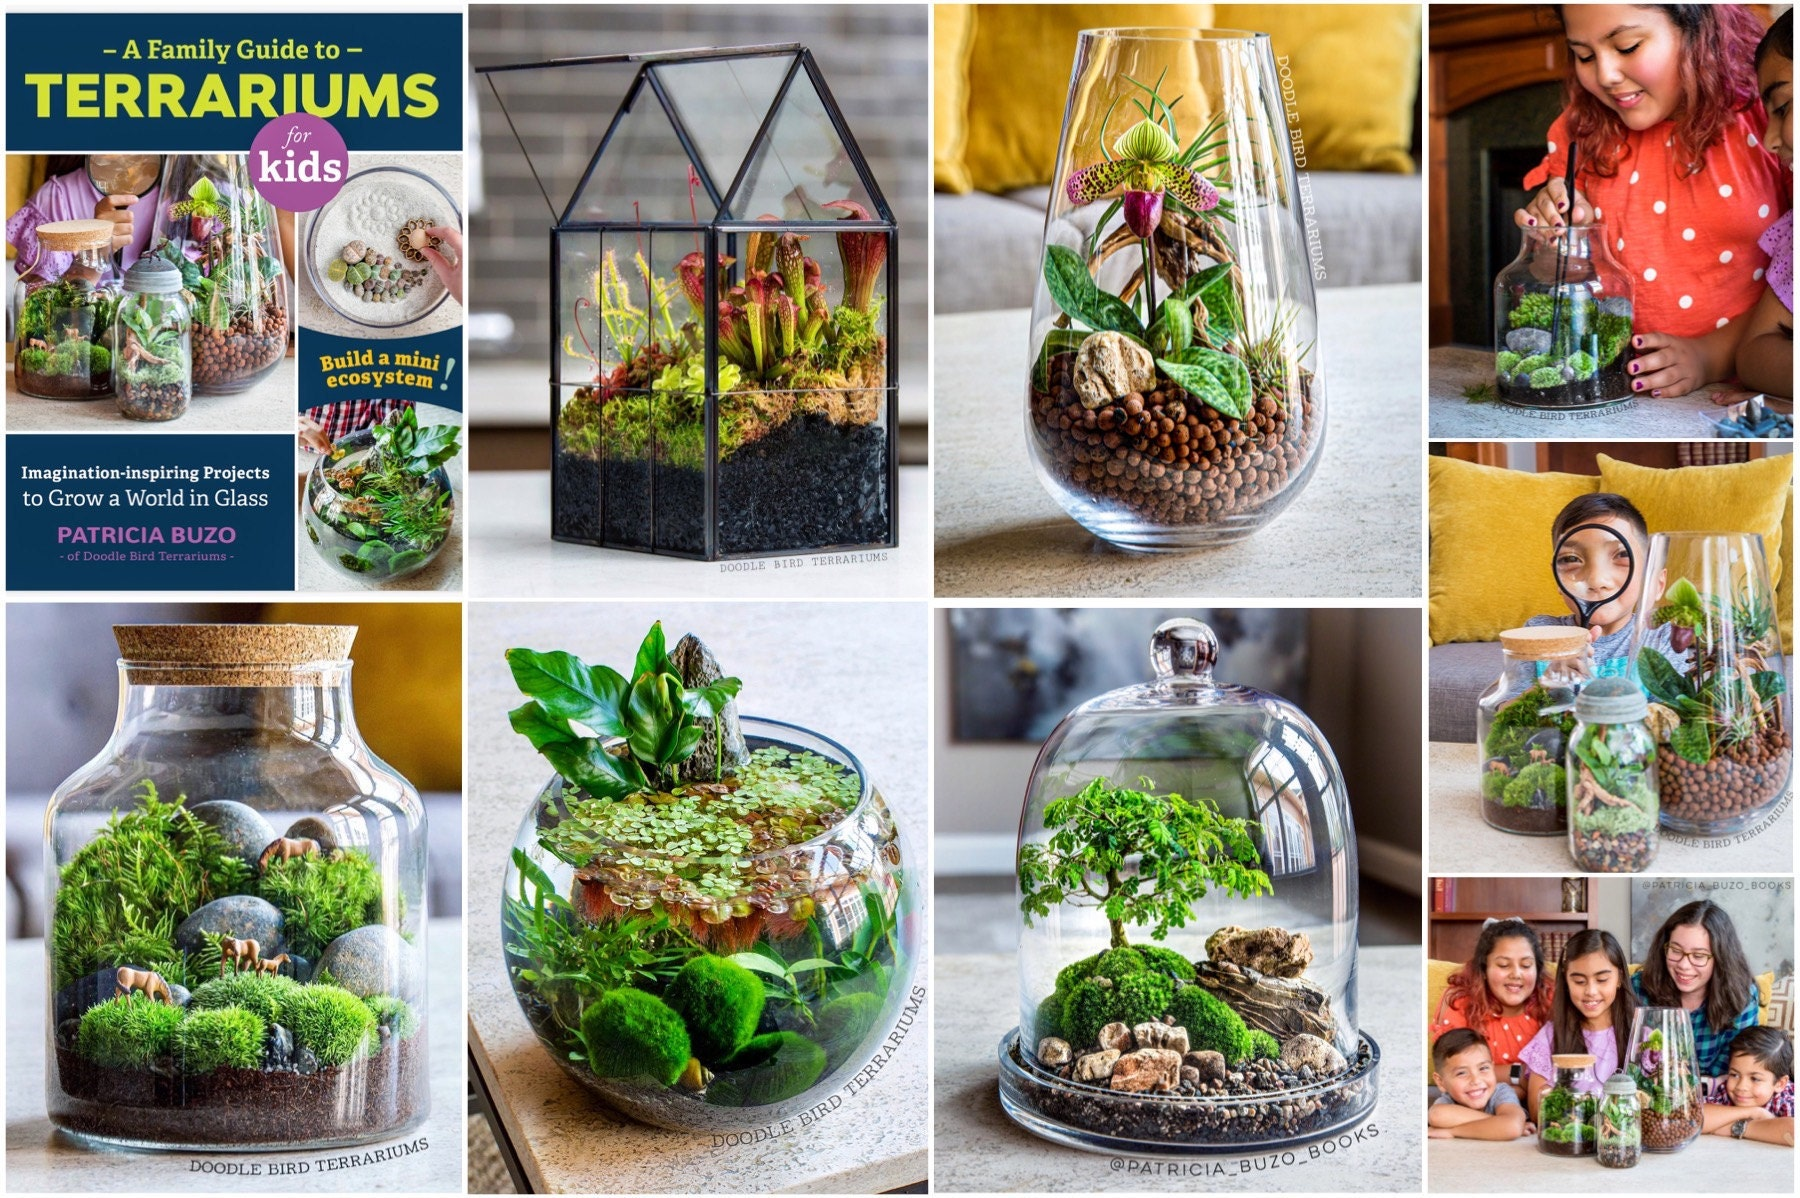 Terrarium projects featured in the book: A Family Guide to Terrariums